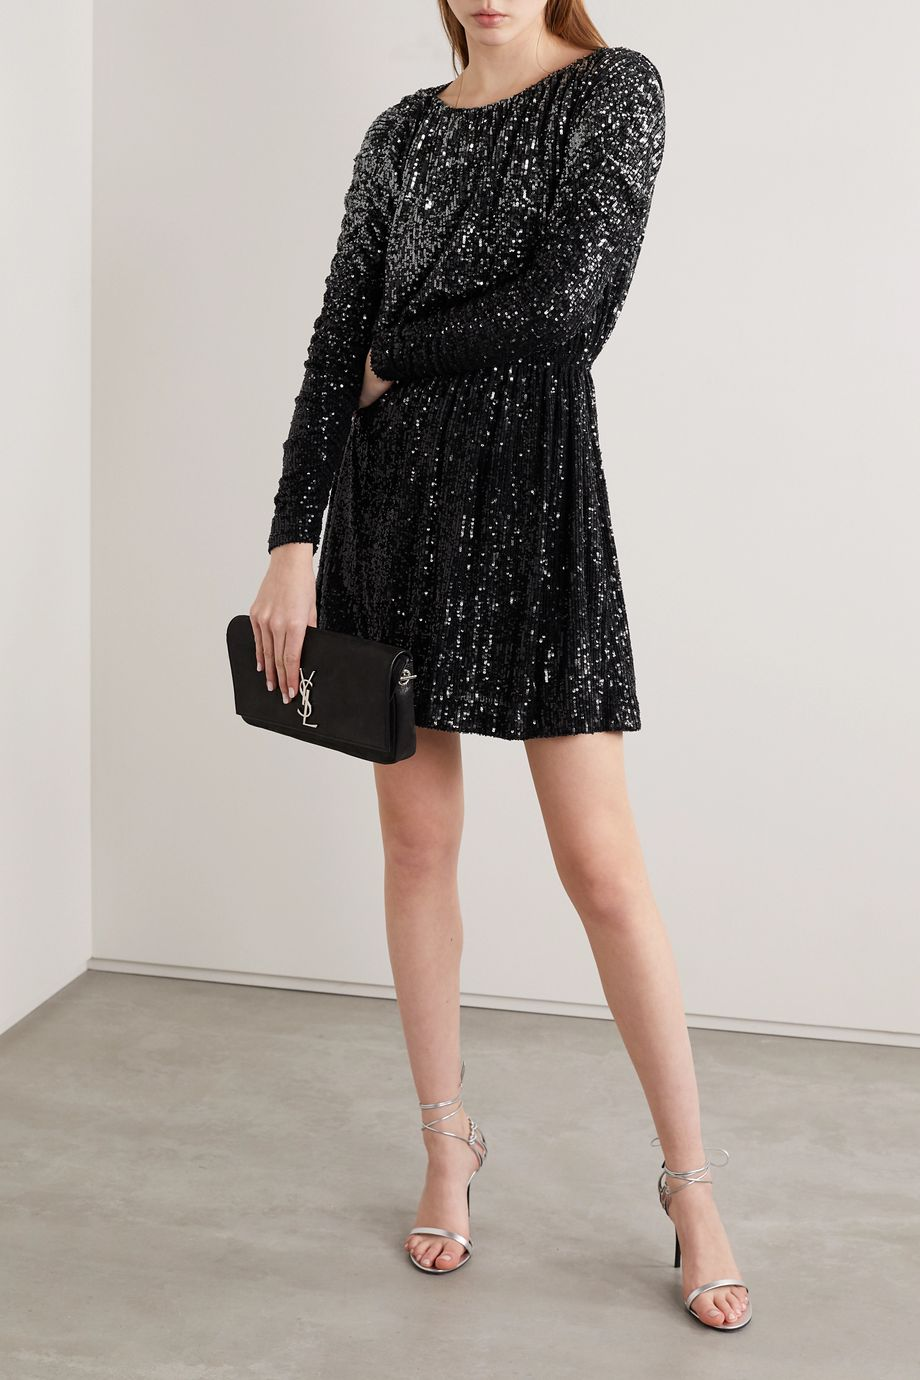 SAINT LAURENT Dégradé sequined stretch-knit mini dress